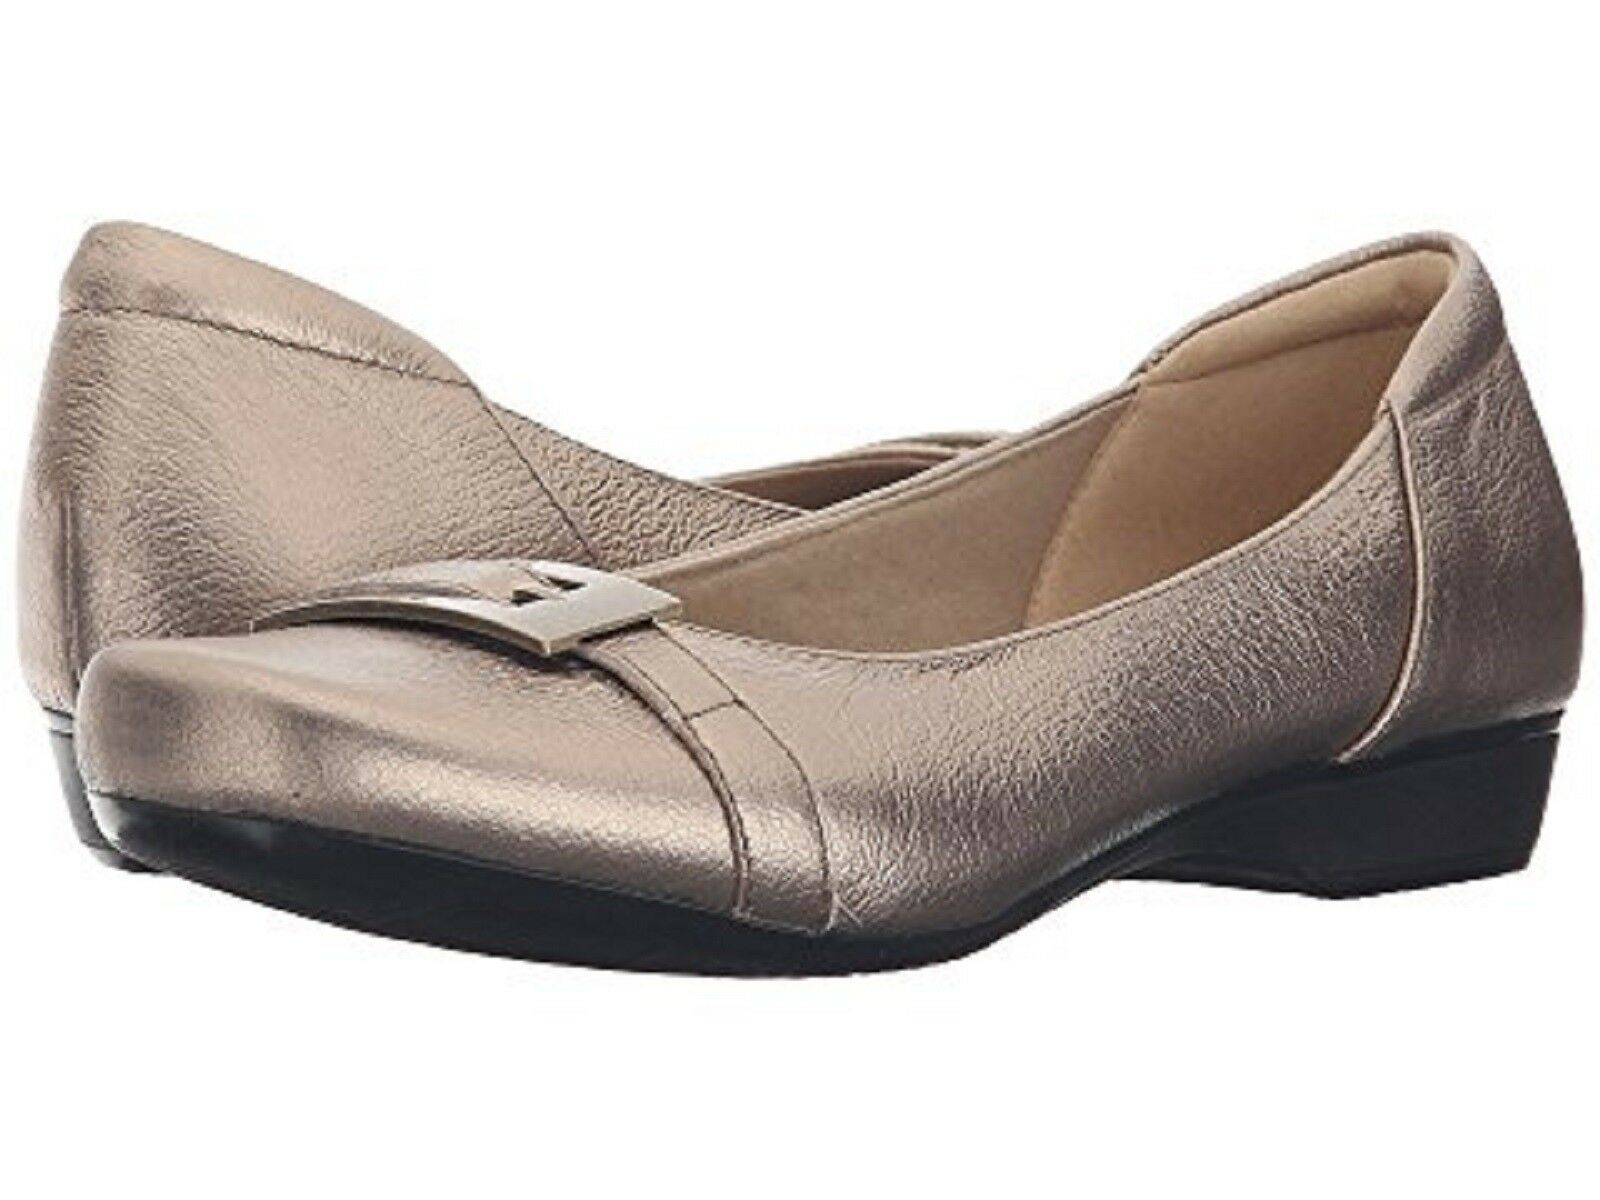 CLARKS Ladies 'BLANCHE WEST' Flats GOLD METALLIC Sz. 8 M NIB